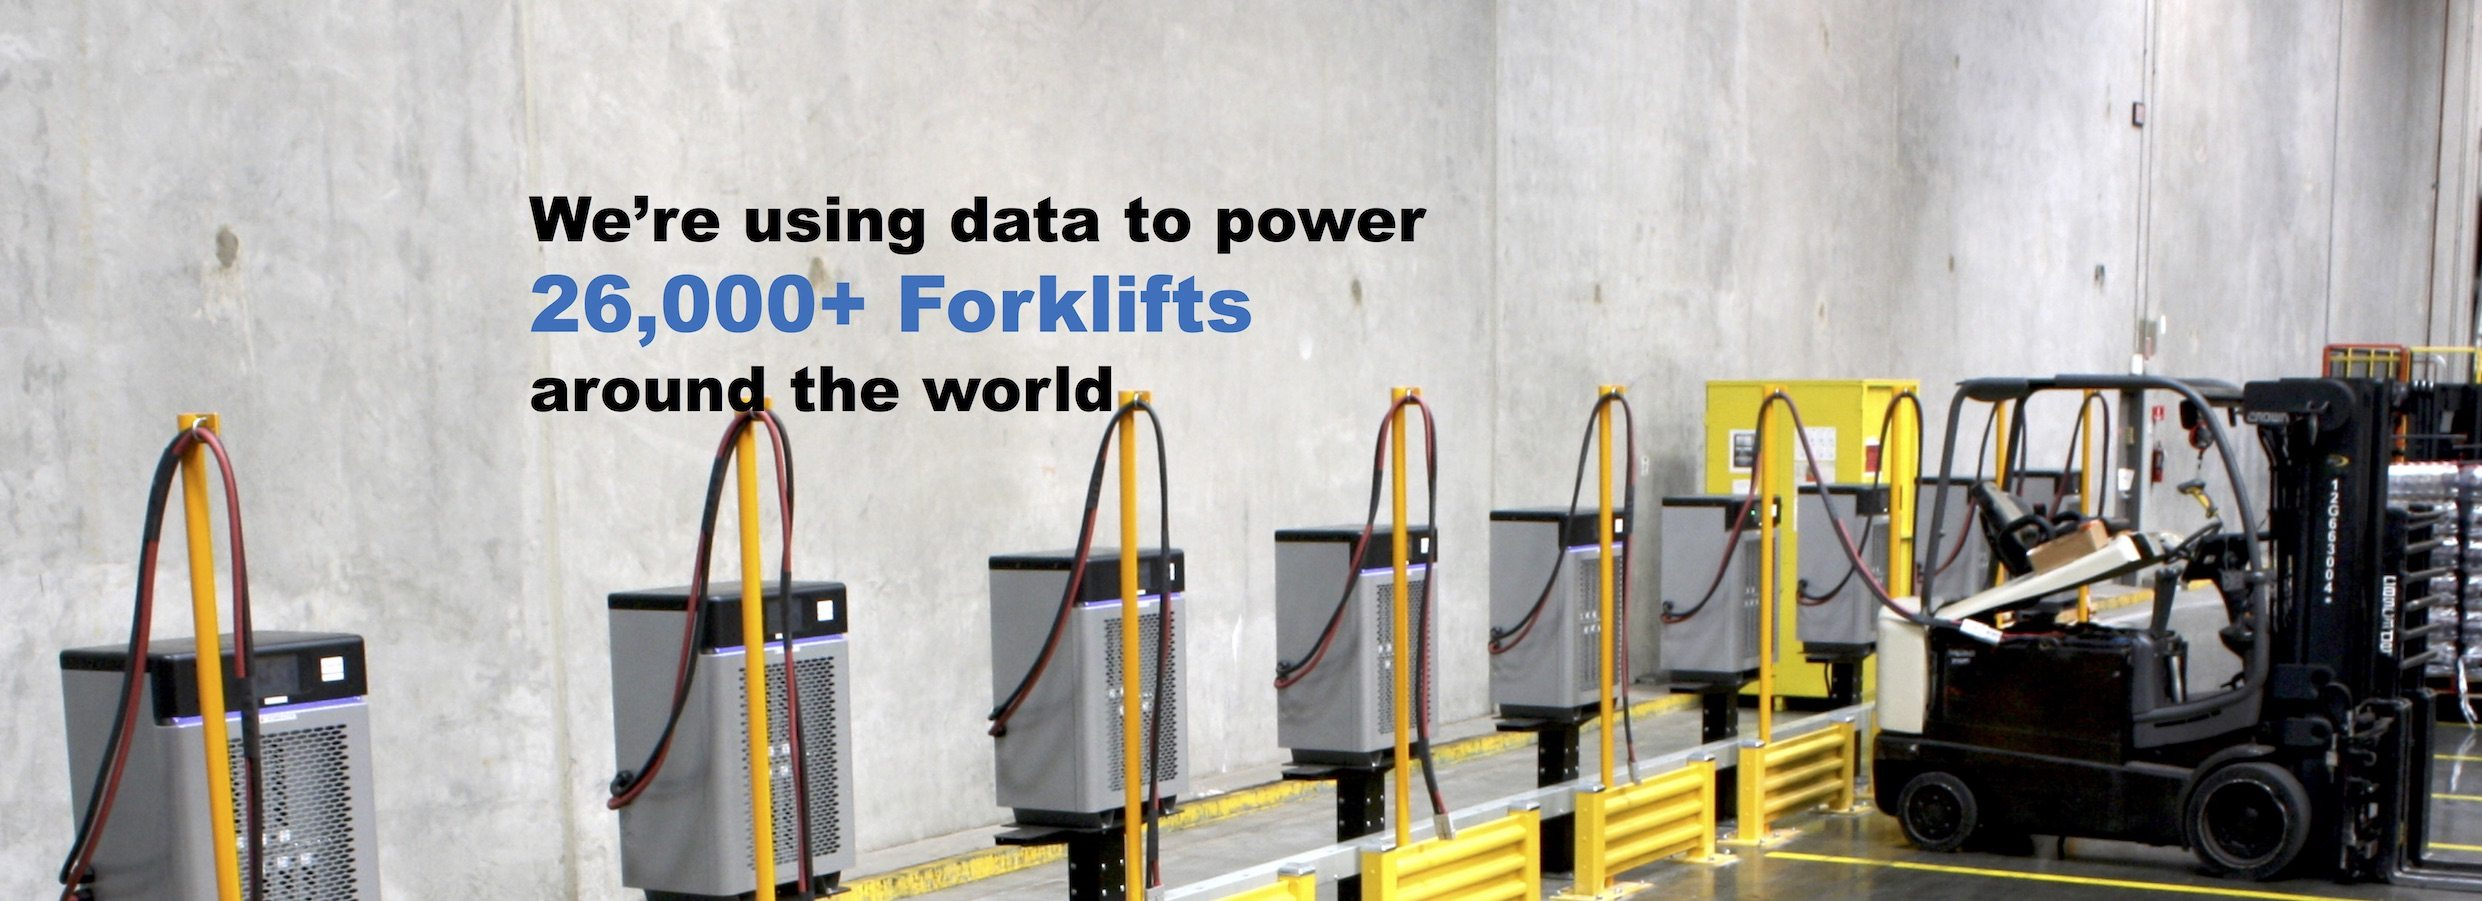 22,000+ forklifts powered by data